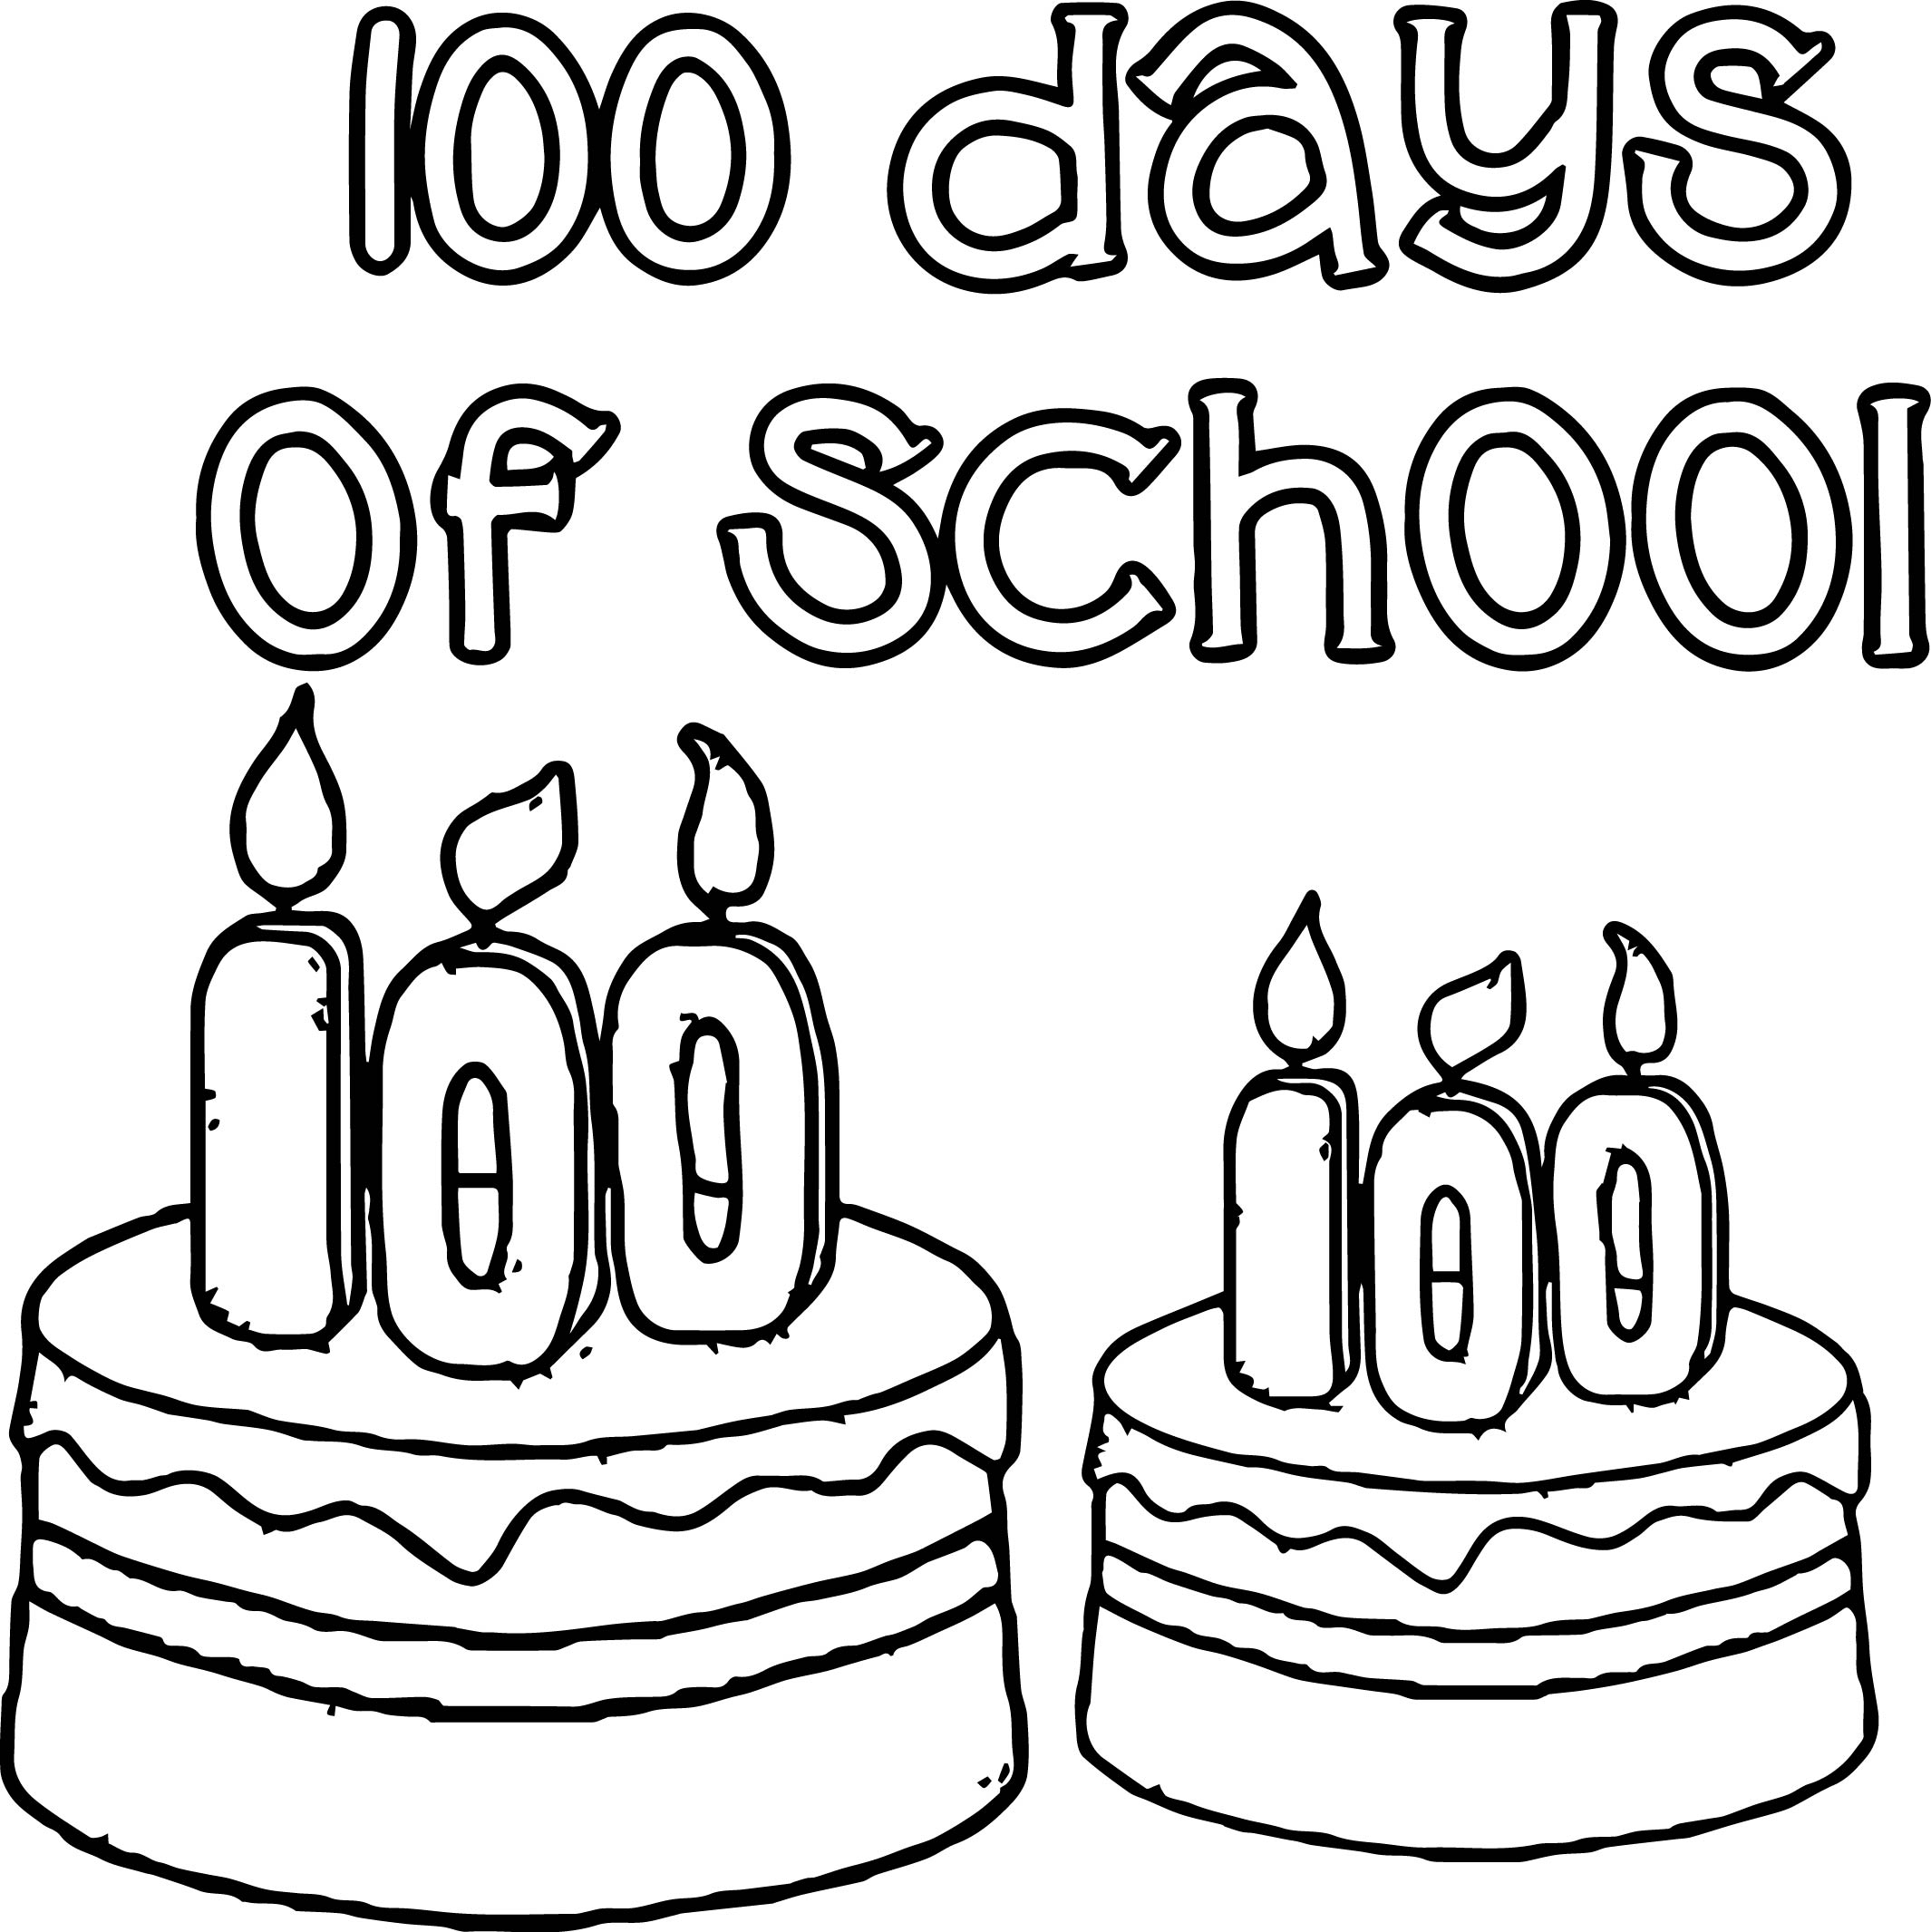 100 Days Of School Coloring Pages